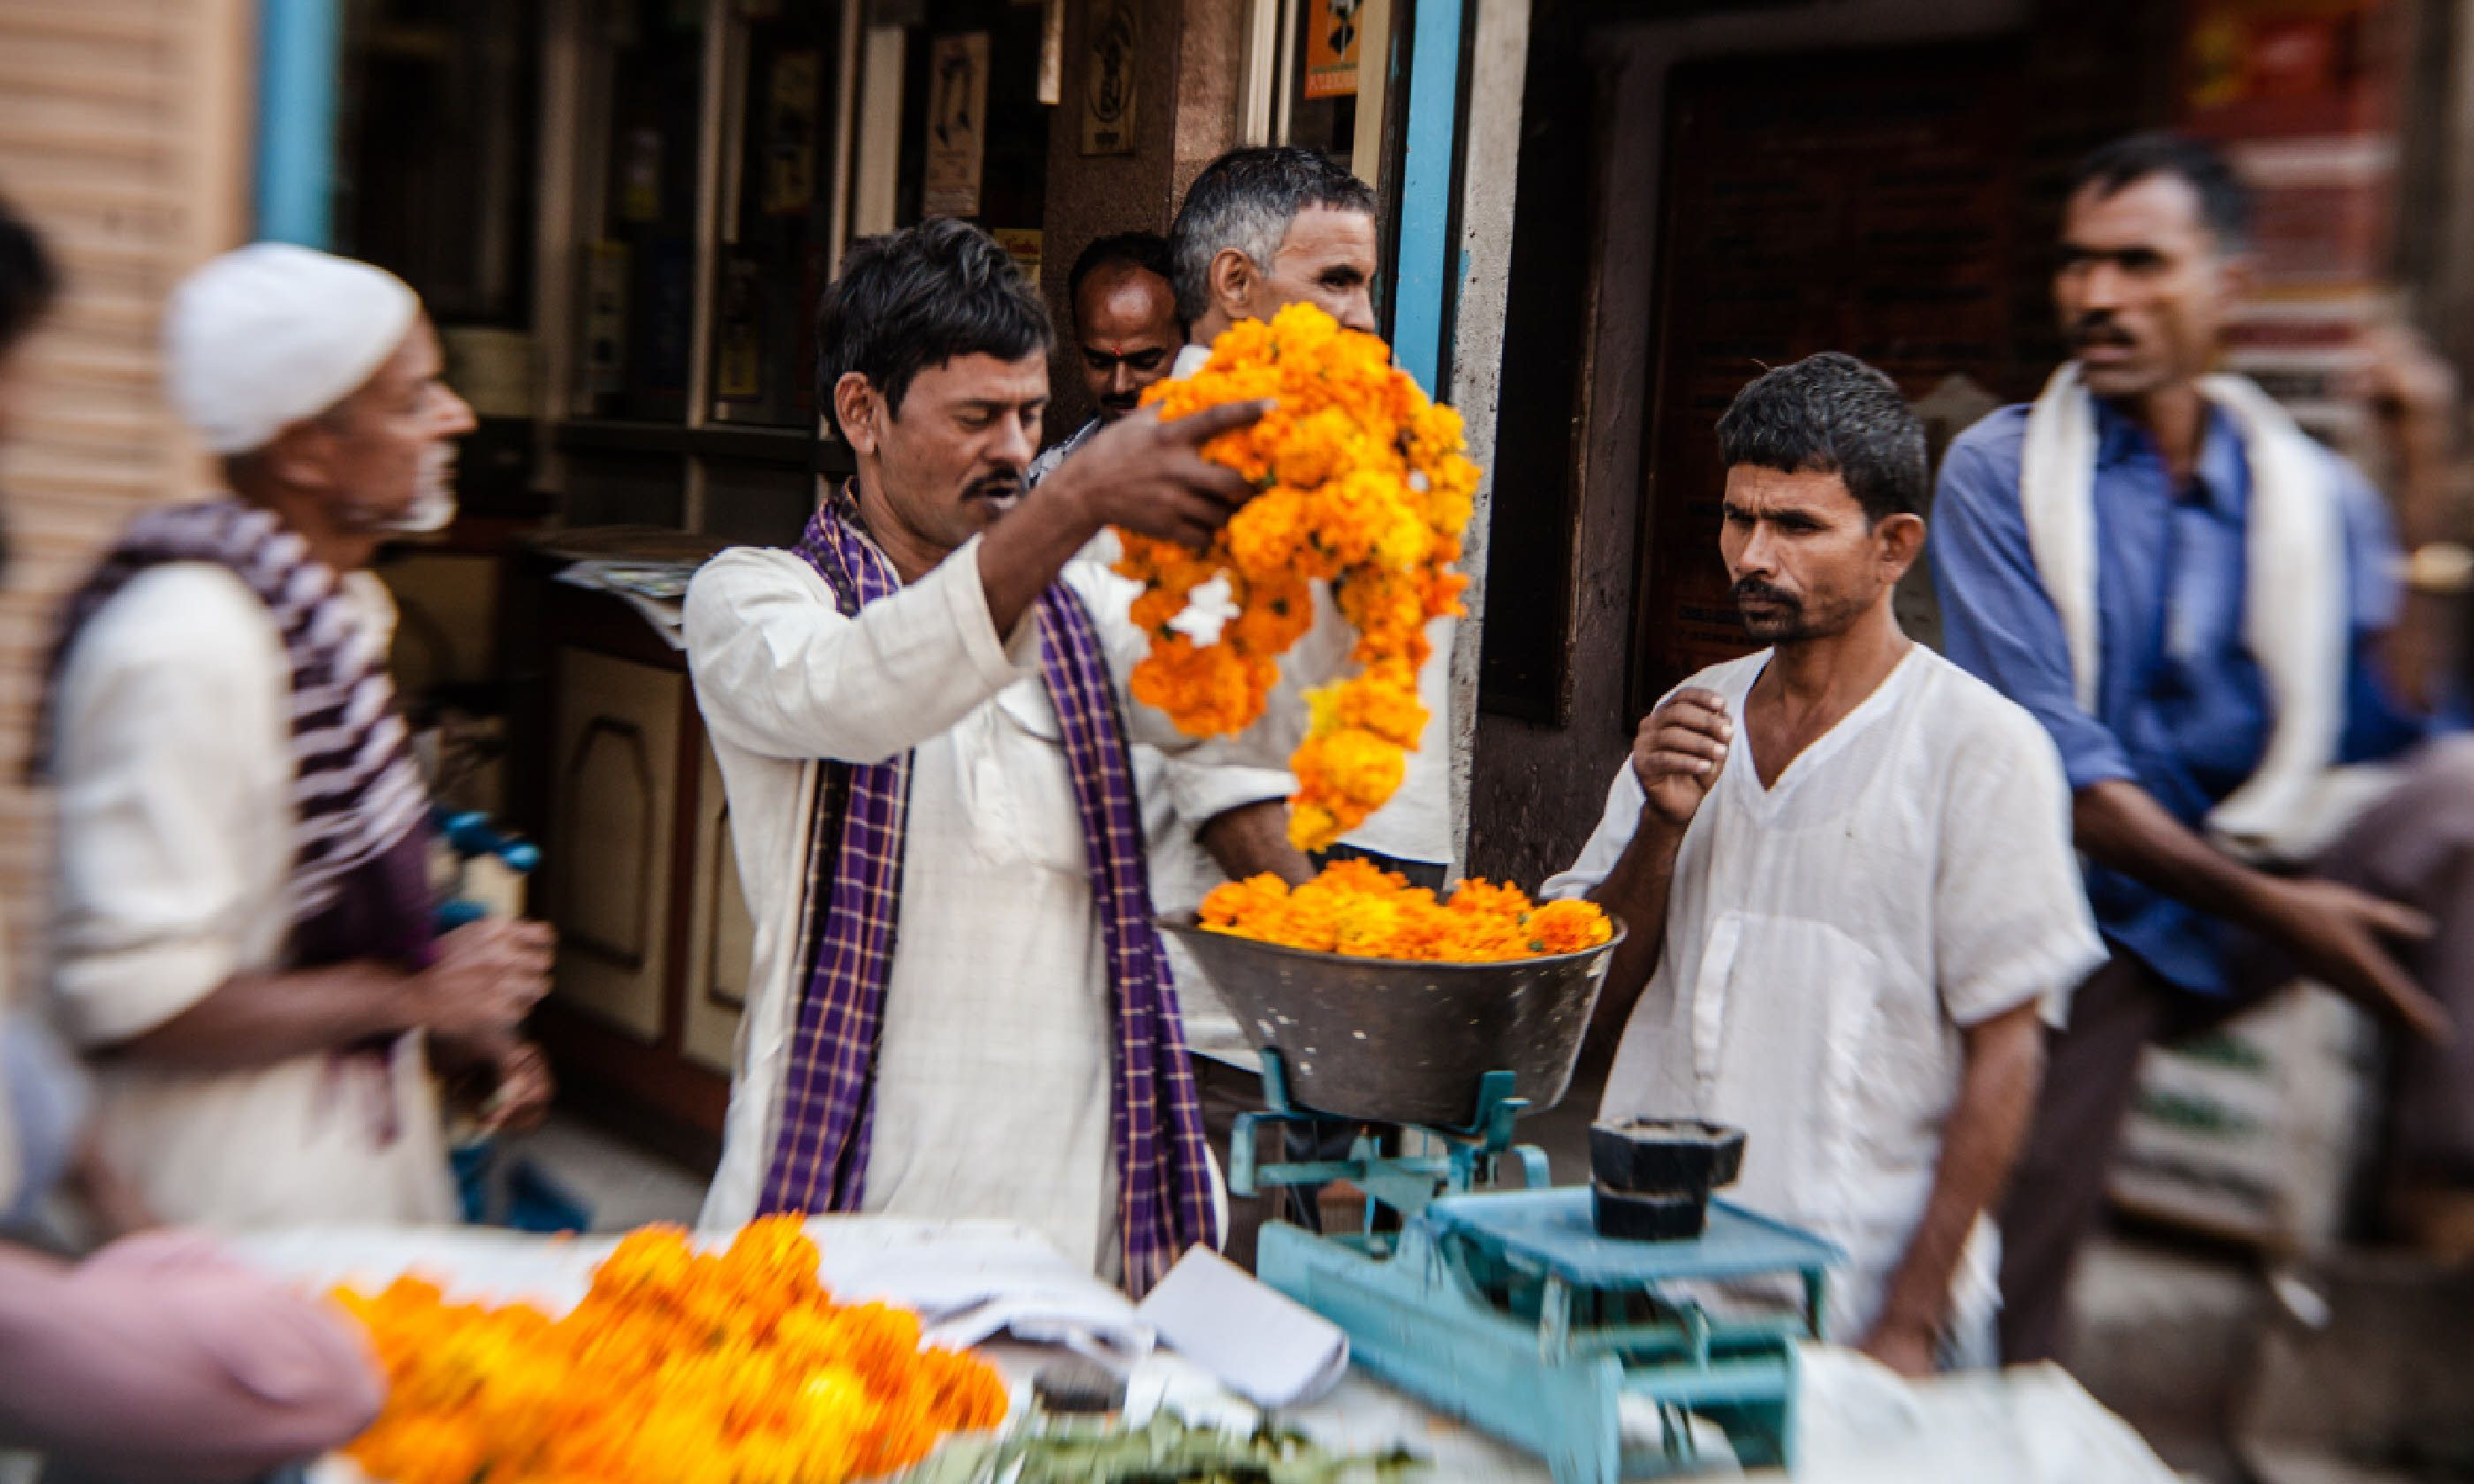 Buying flowers in a Delhi market (Shutterstock)